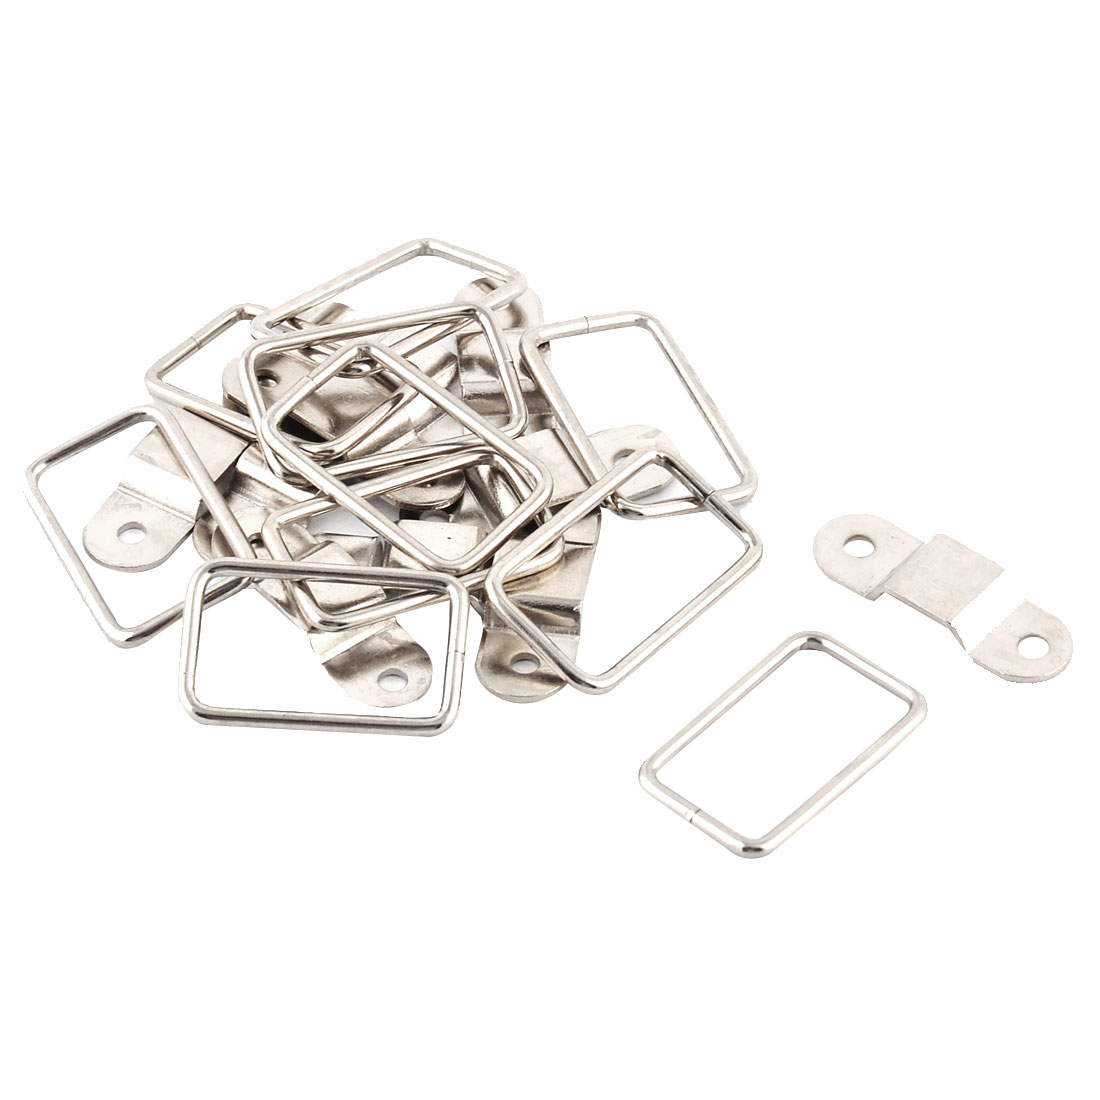 Cabinet Cupboard Drawer Door Metal Rectangle Pull Handle Silver Tone 10 PCS